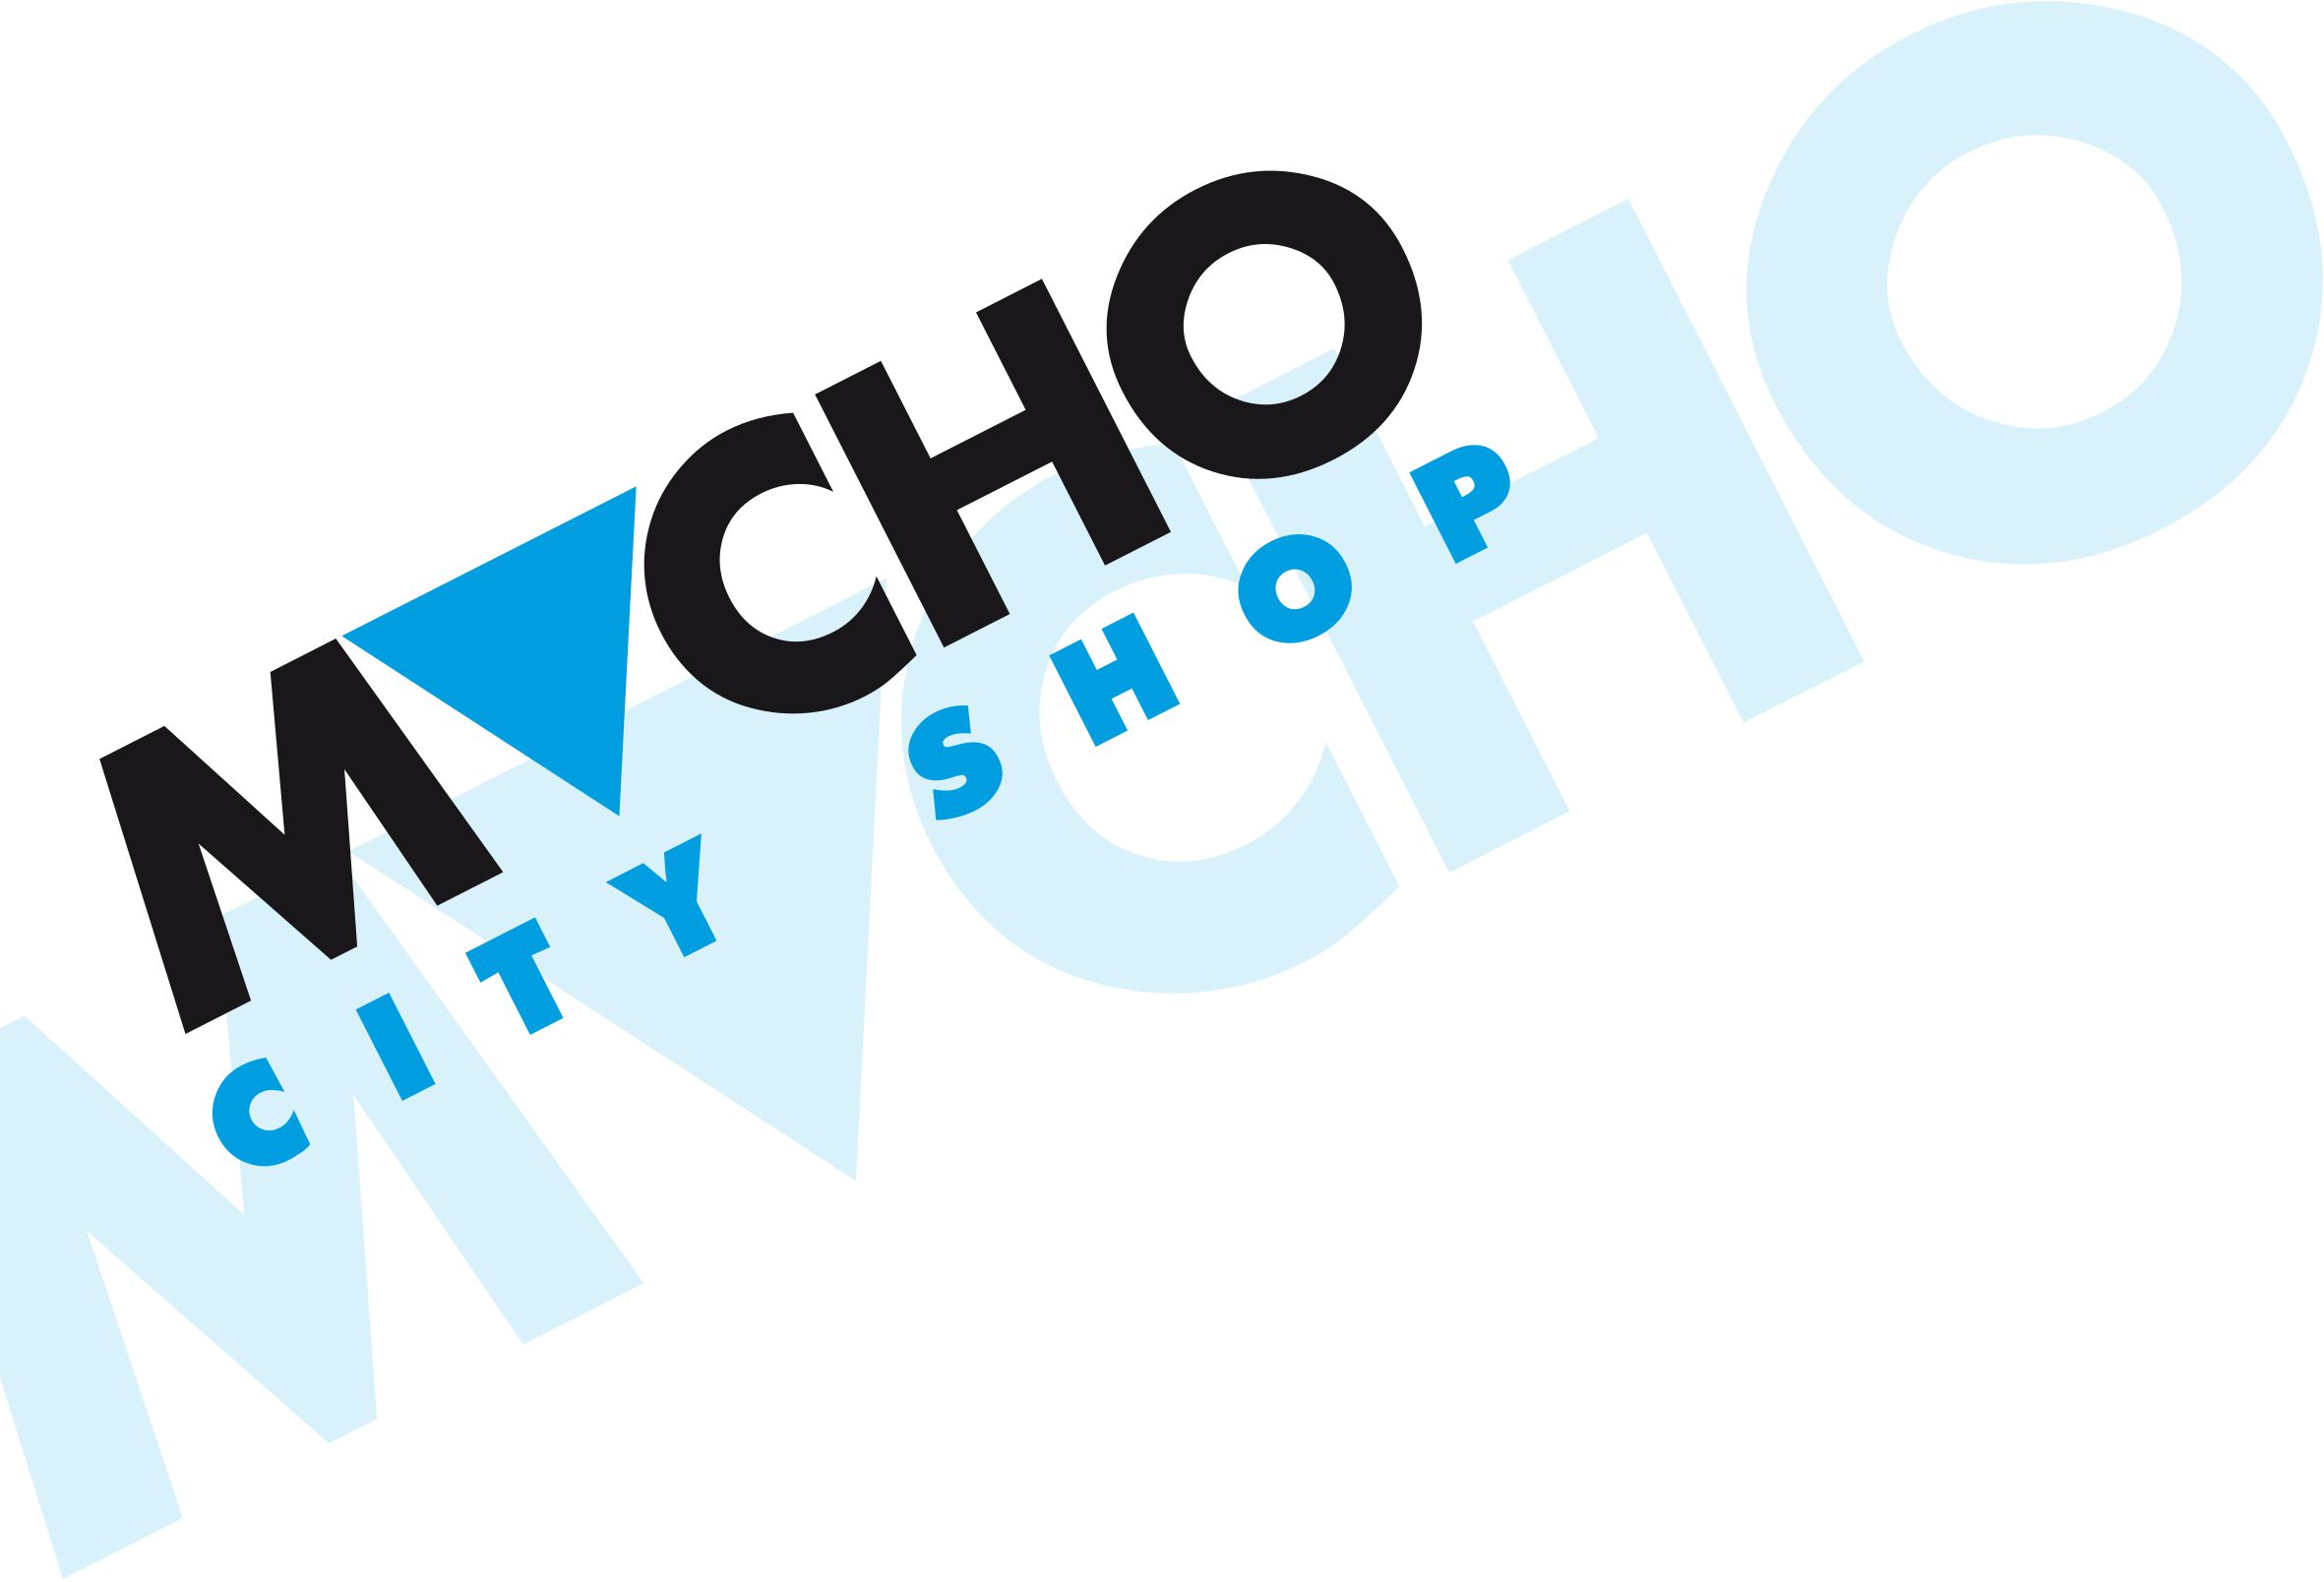 Macho City Shop